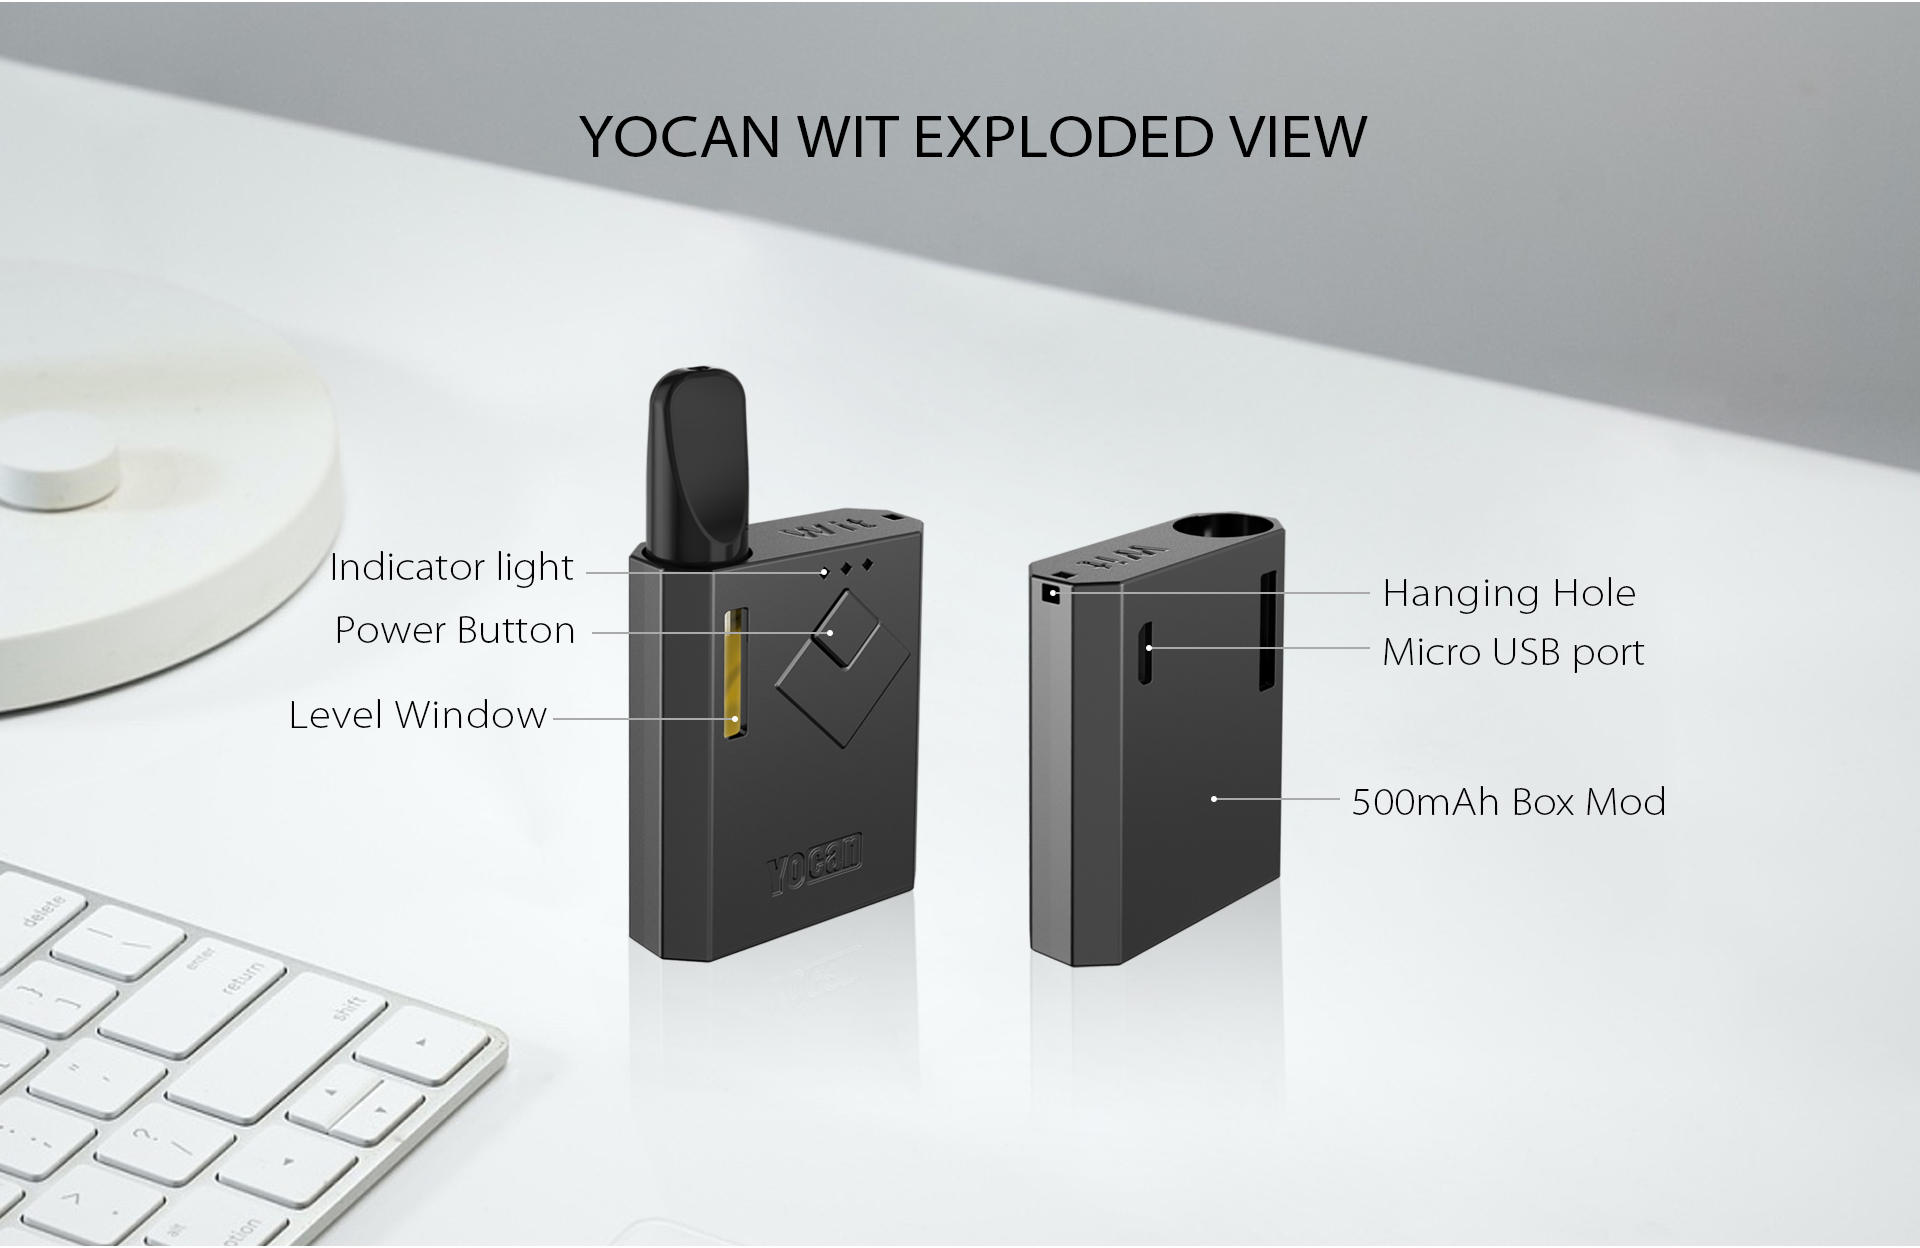 The Yocan Wit Box Mod Battery exploded view.